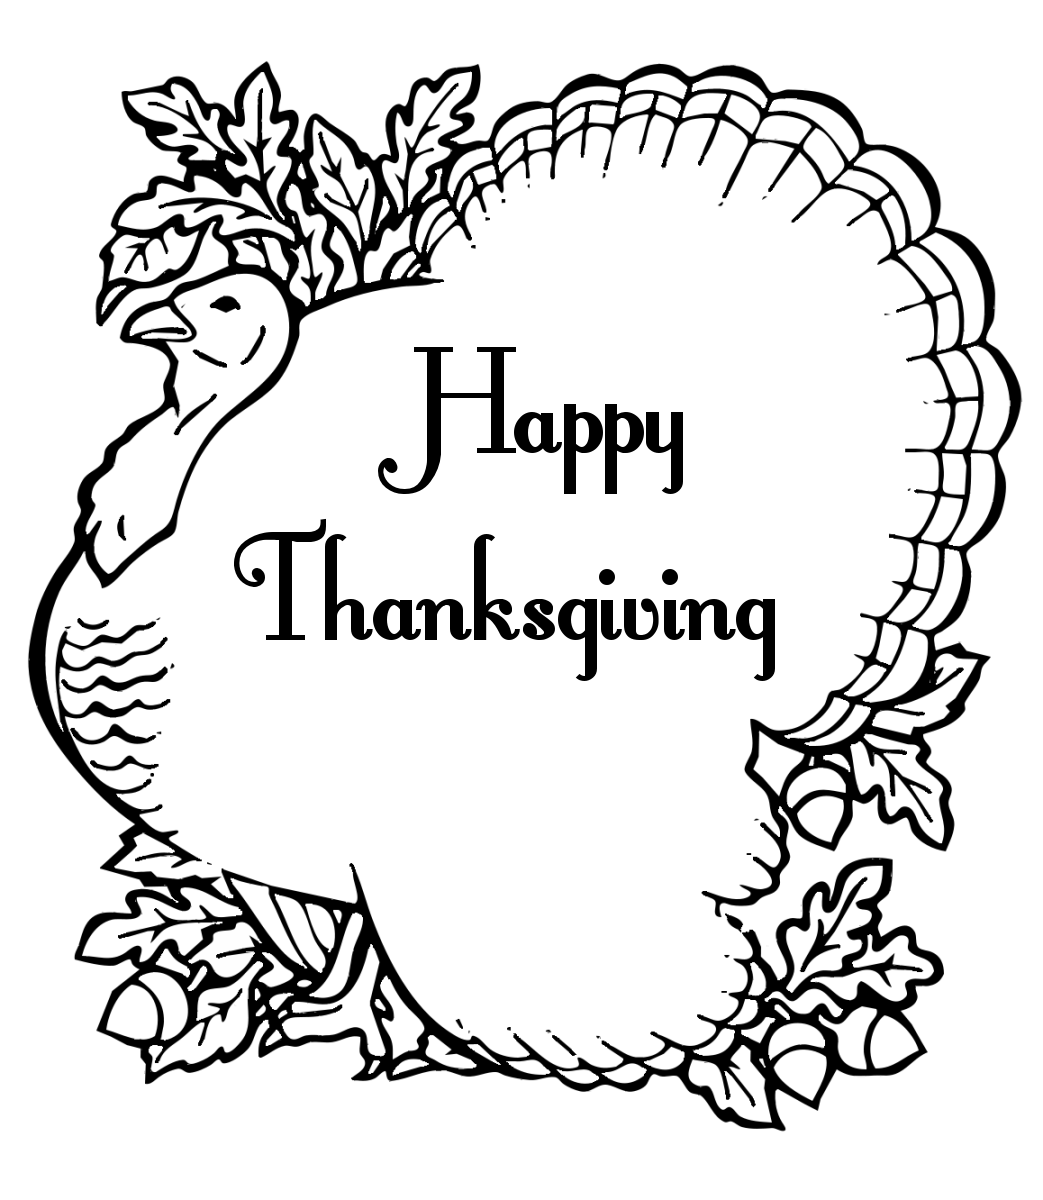 Thanksgiving Coloring Pages 2 Coloring Pages To Print Free Printable Coloring Pages For Thanksgiving